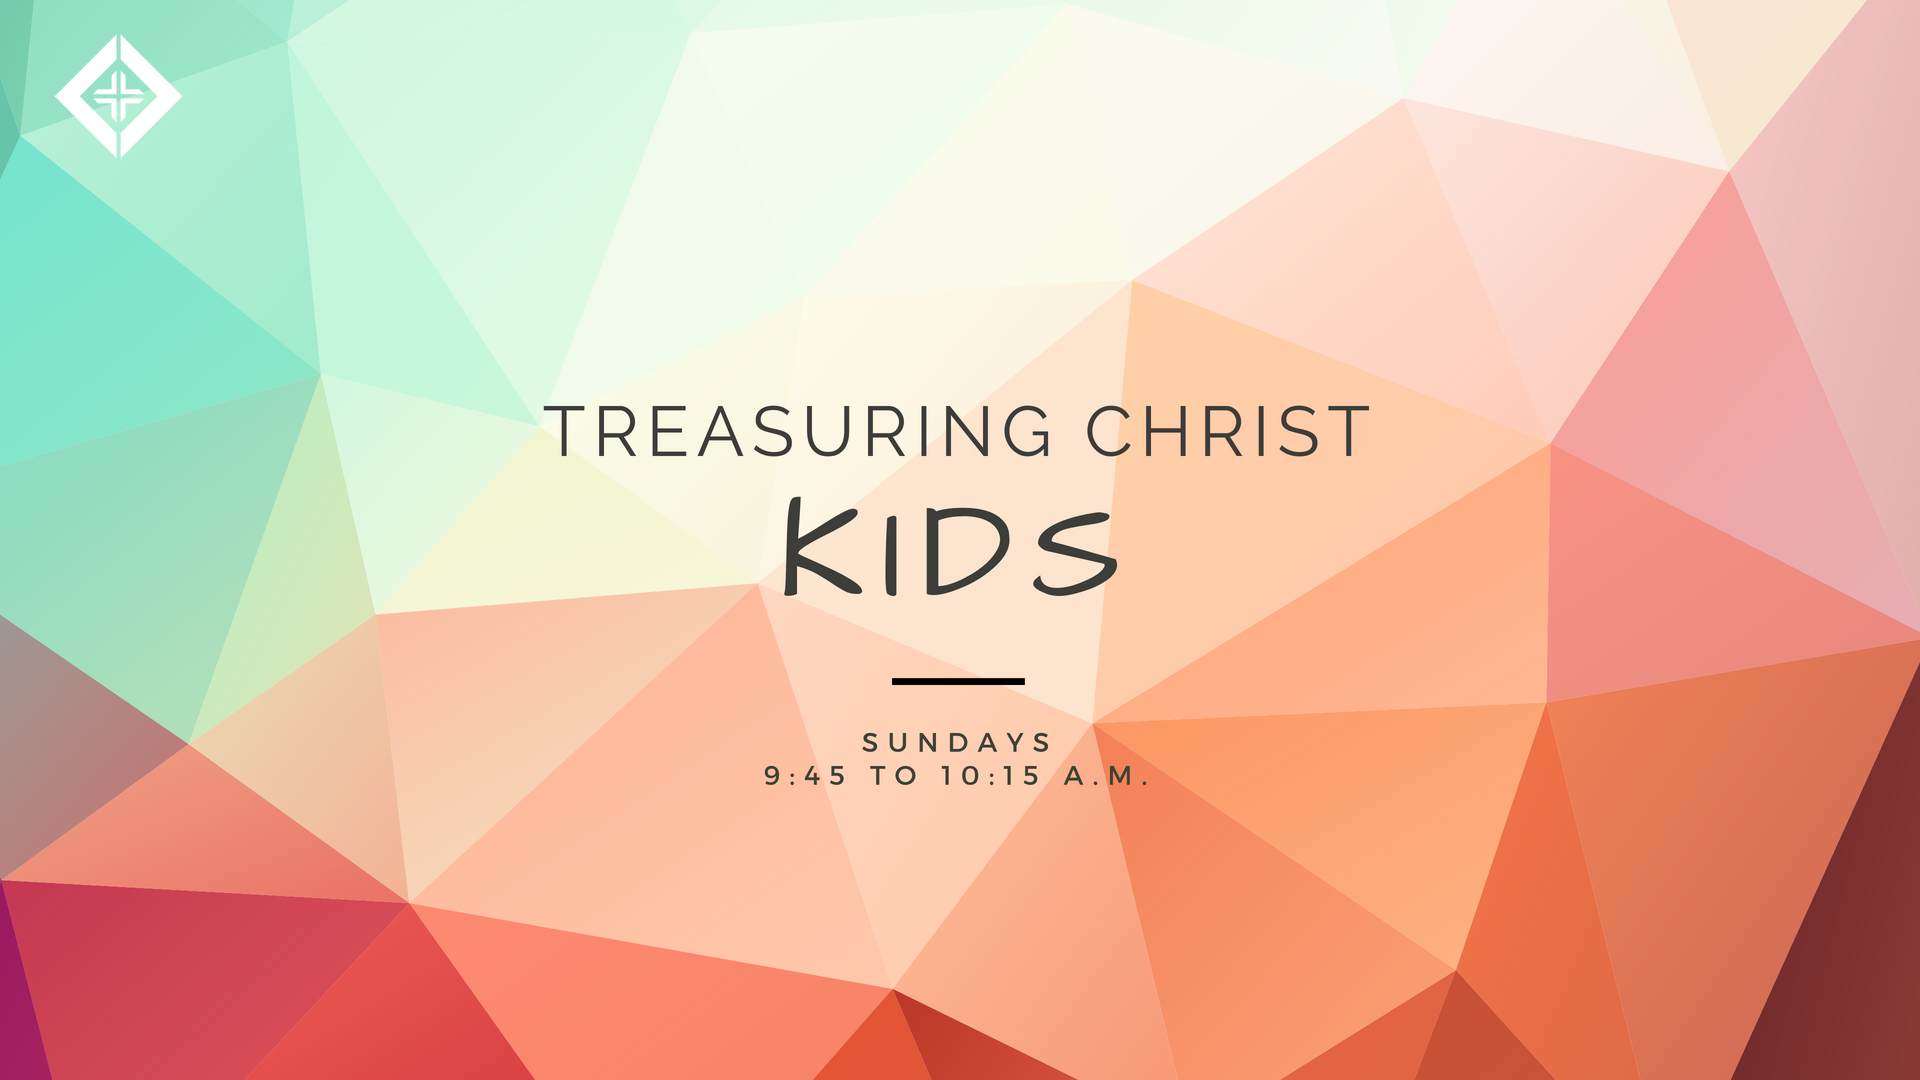 Summer Break - Treasuring Christ Kids is on break for the summer and will be offered again in late August.